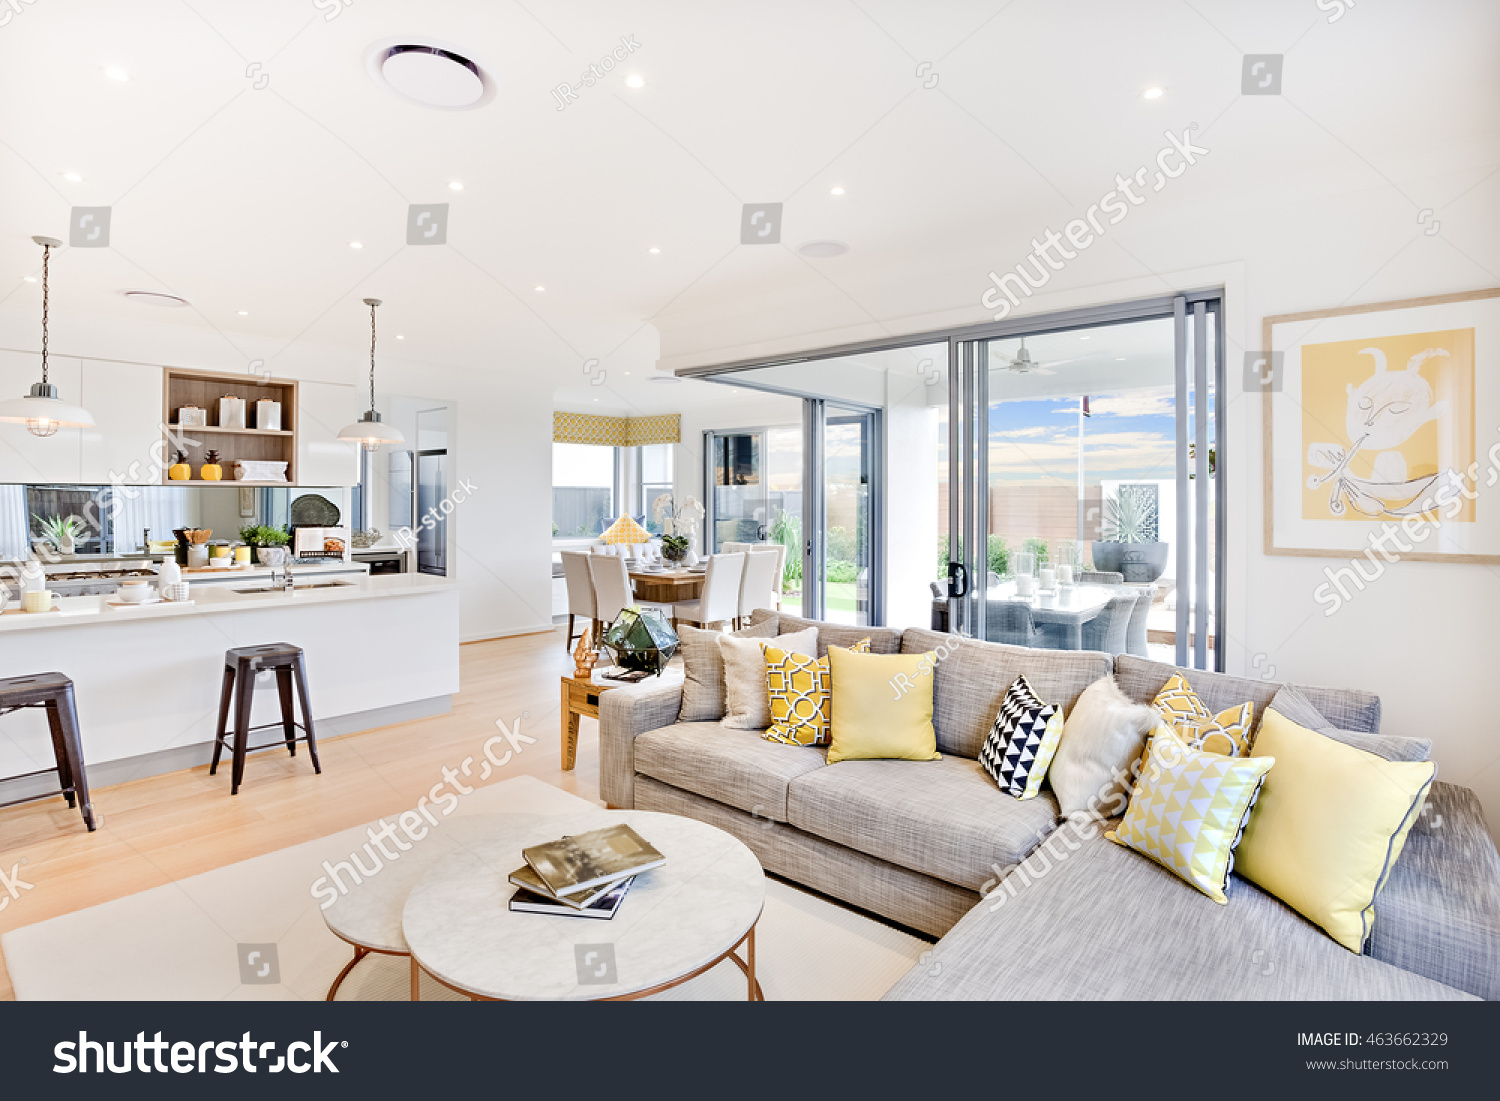 luxury house interior focusing the living room sofa and pillows next round table on the carpet